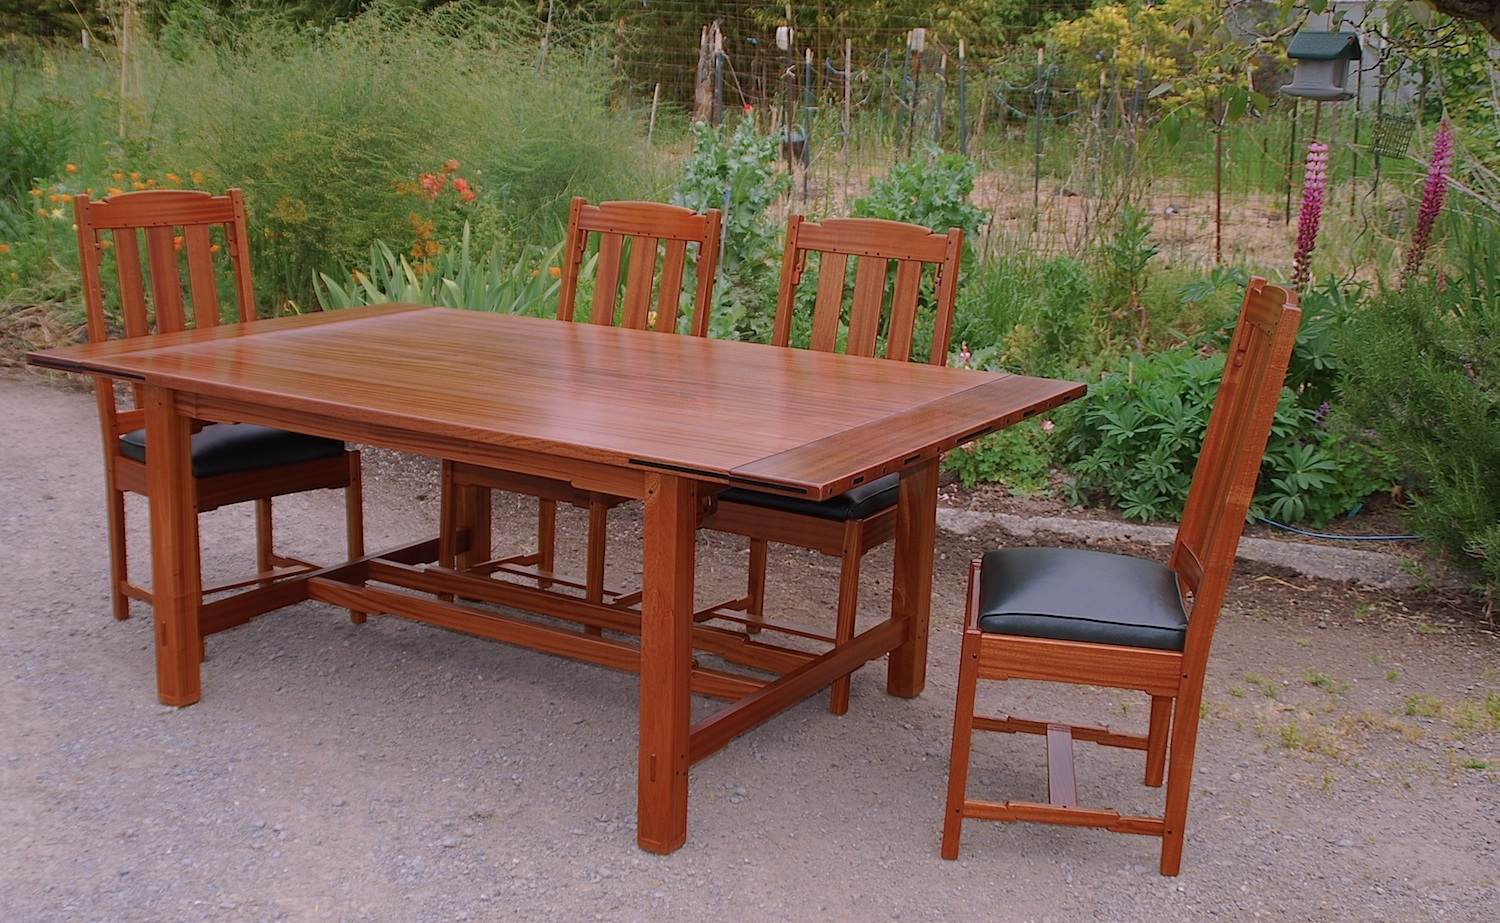 Voorhees craftsman mission oak furniture greene greene style view of table base dzzzfo